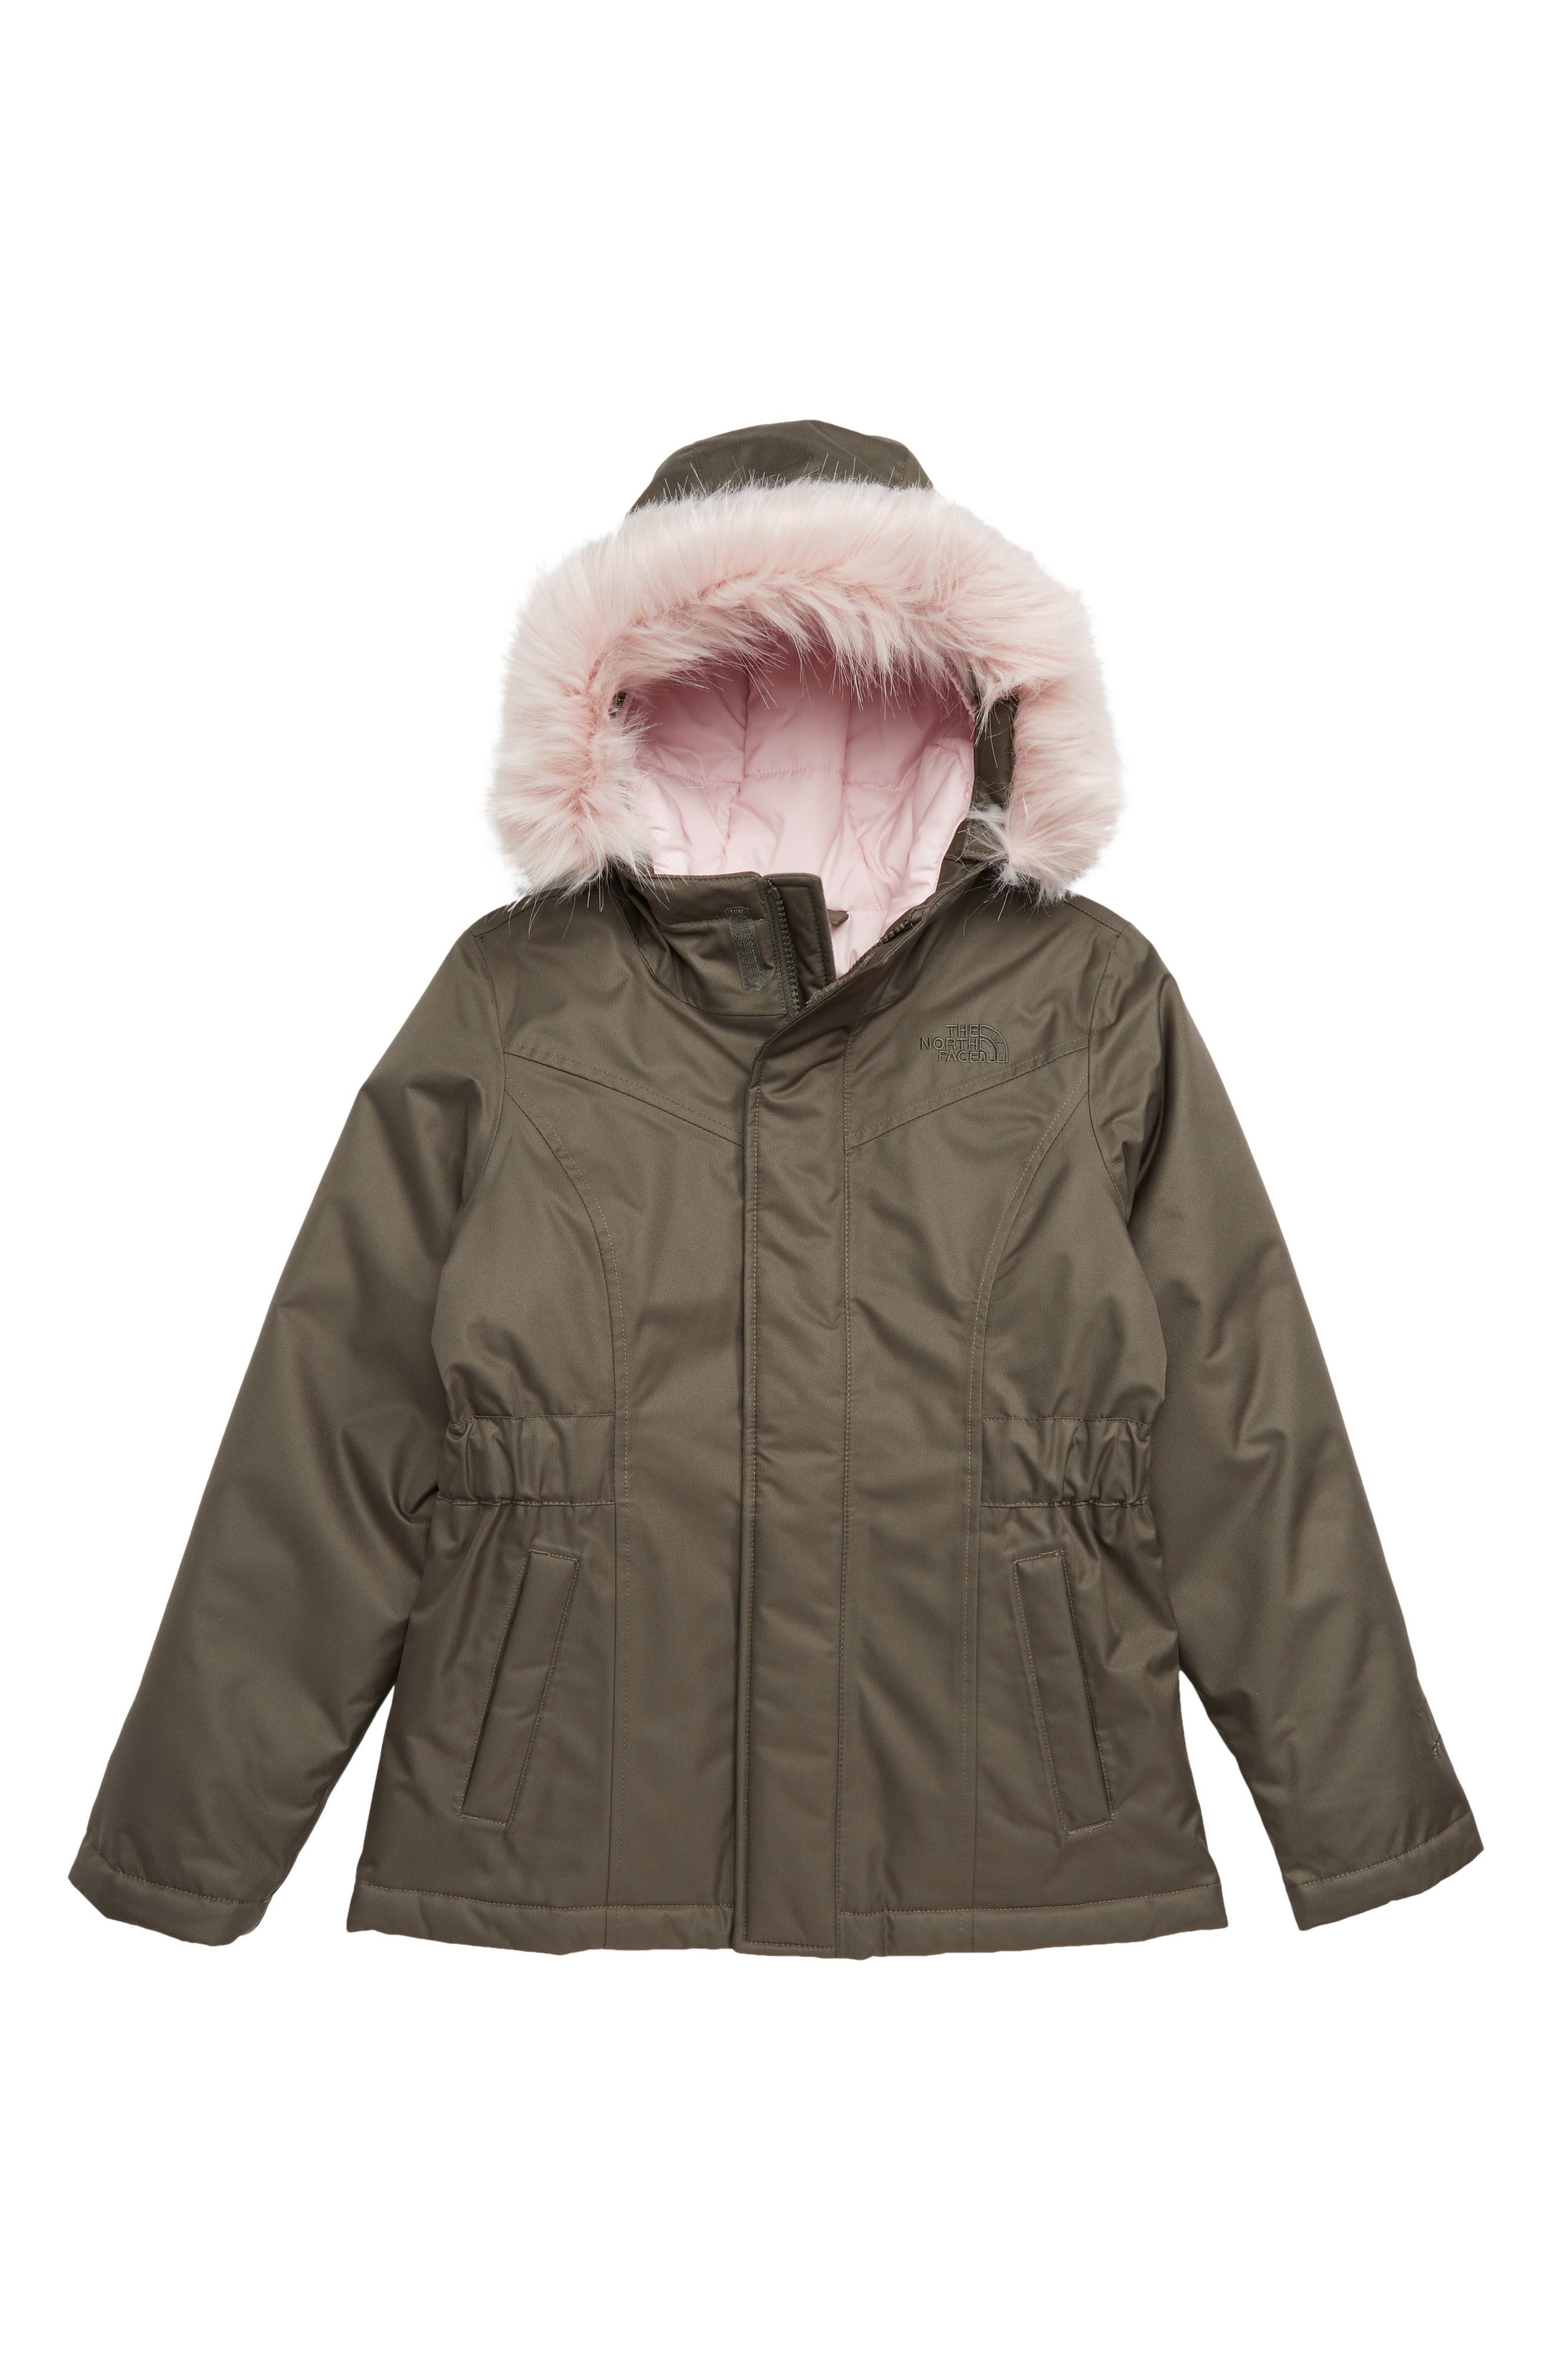 THE NORTH FACE, Greenland Waterproof 550-Fill-Power Down Parka, Main thumbnail 1, color, NEW TAUPE GREEN